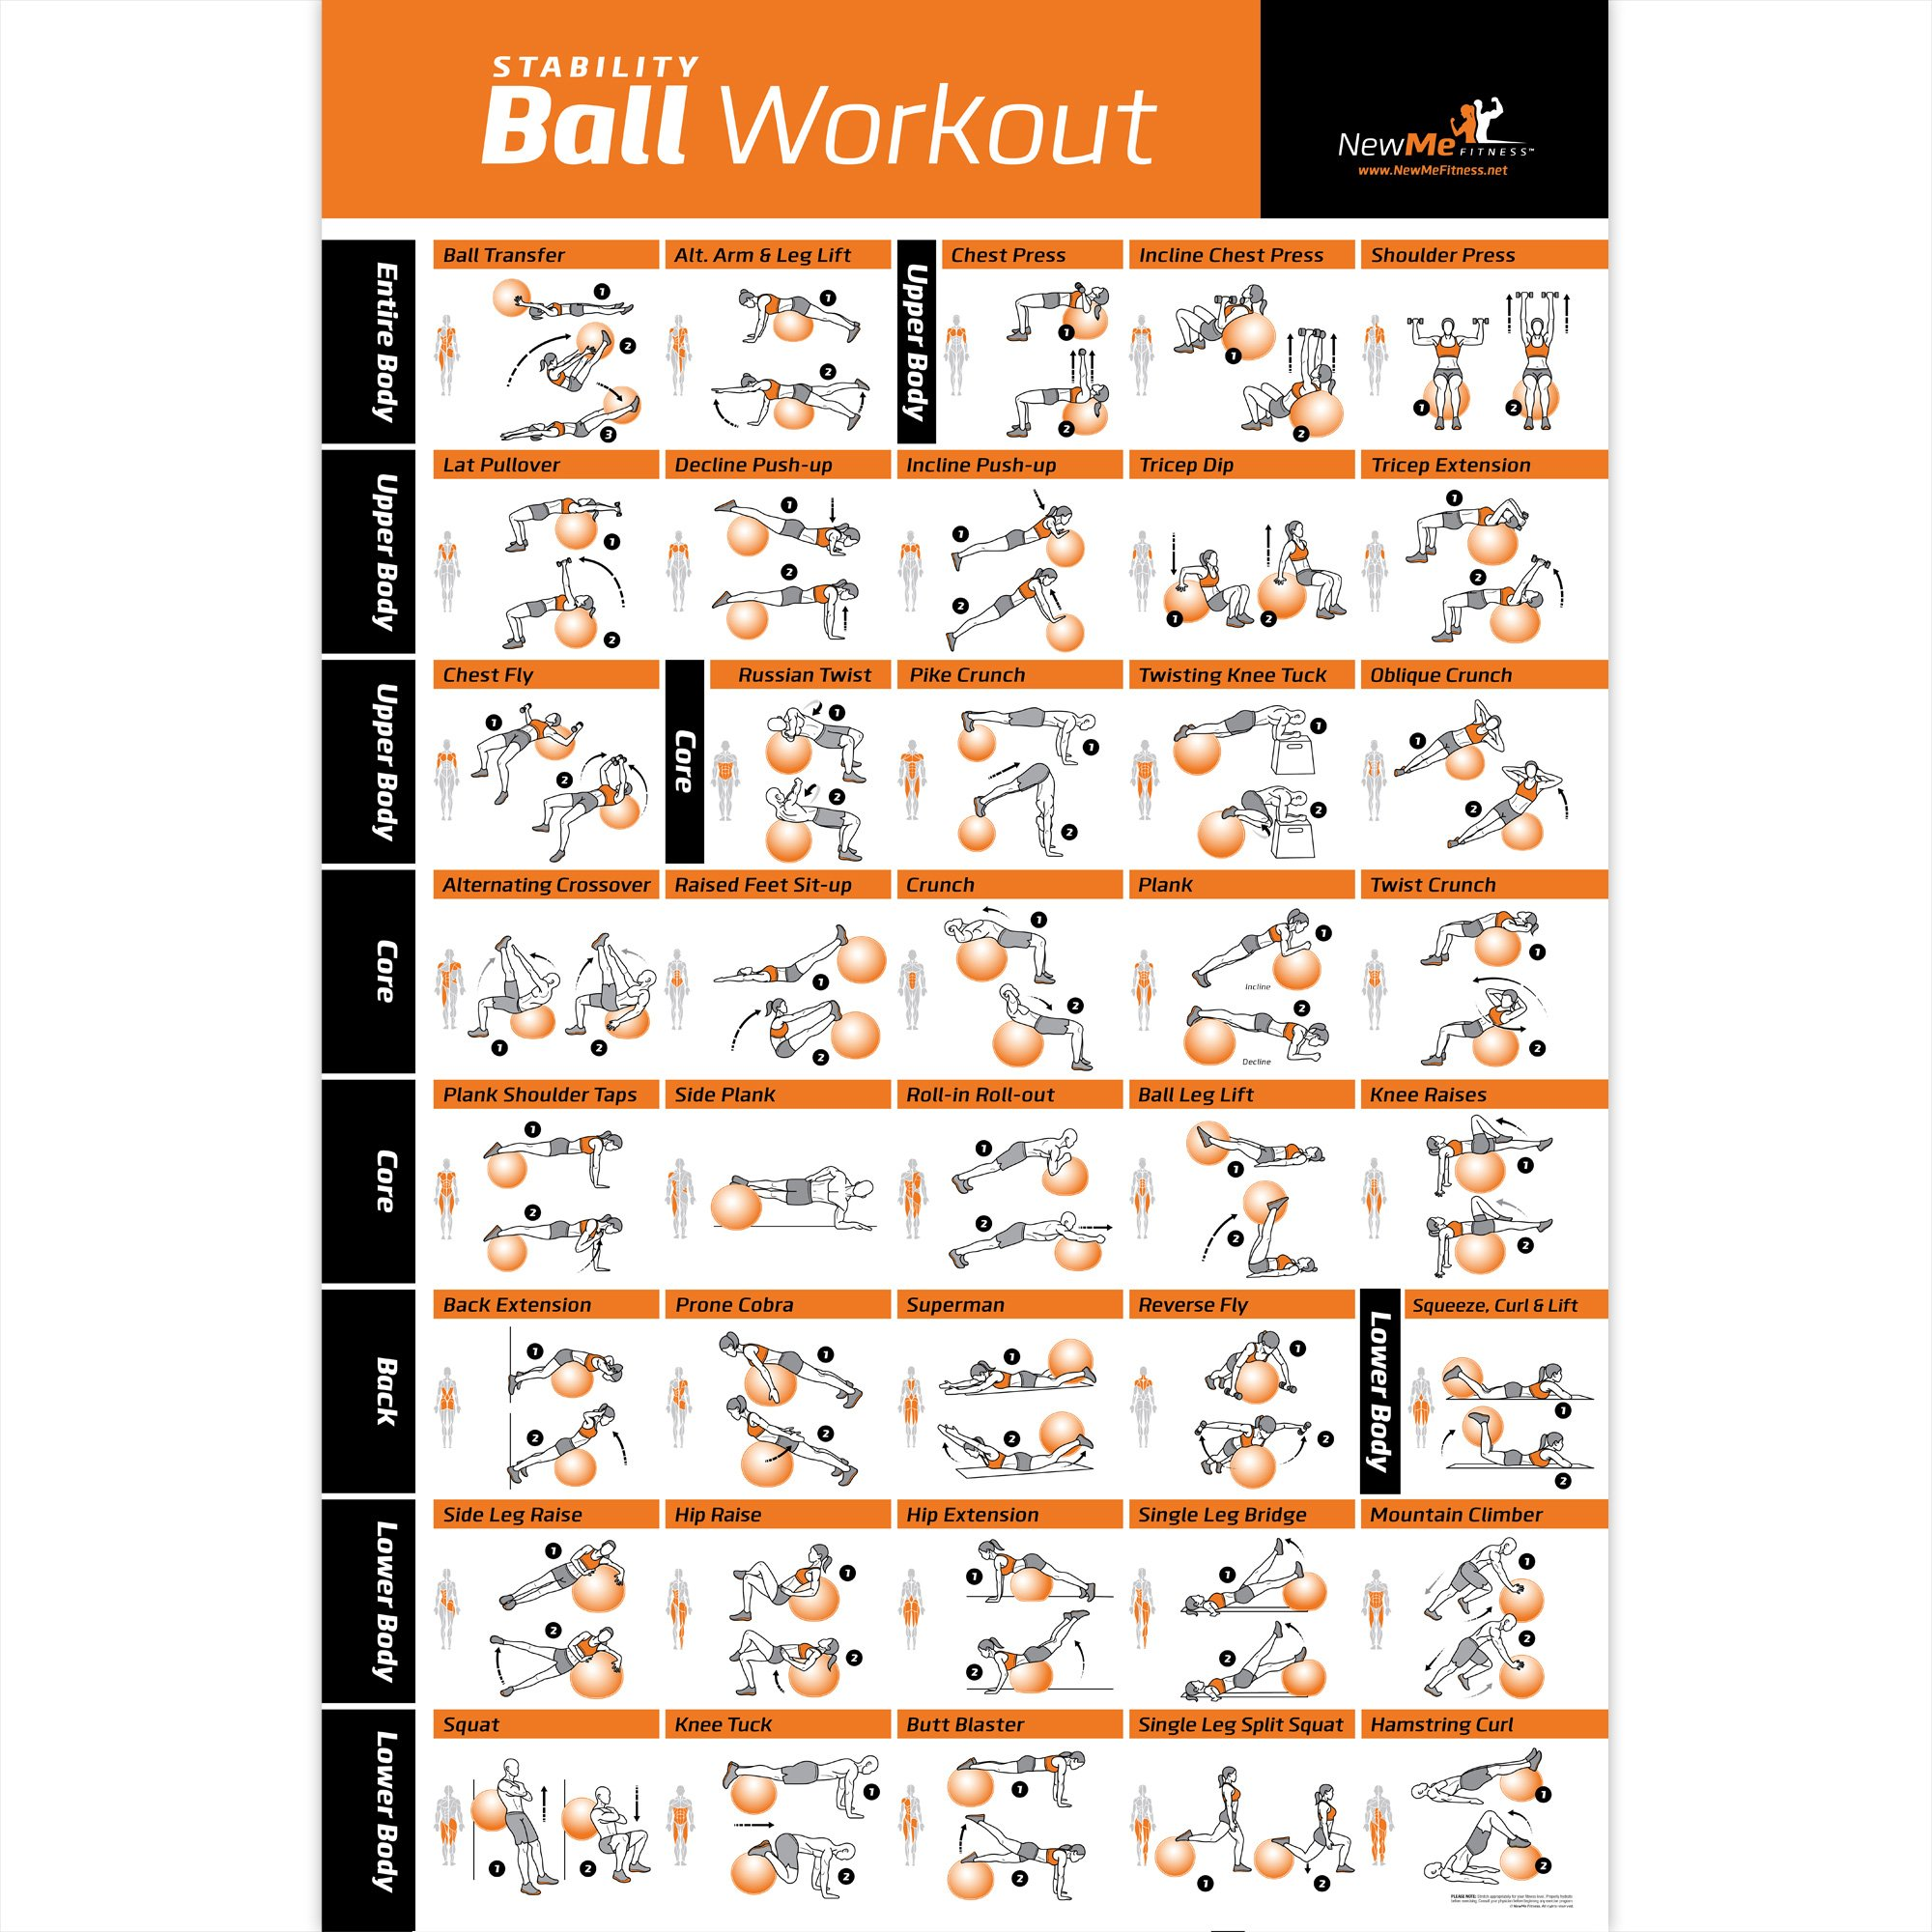 Playful image with printable exercise ball workouts